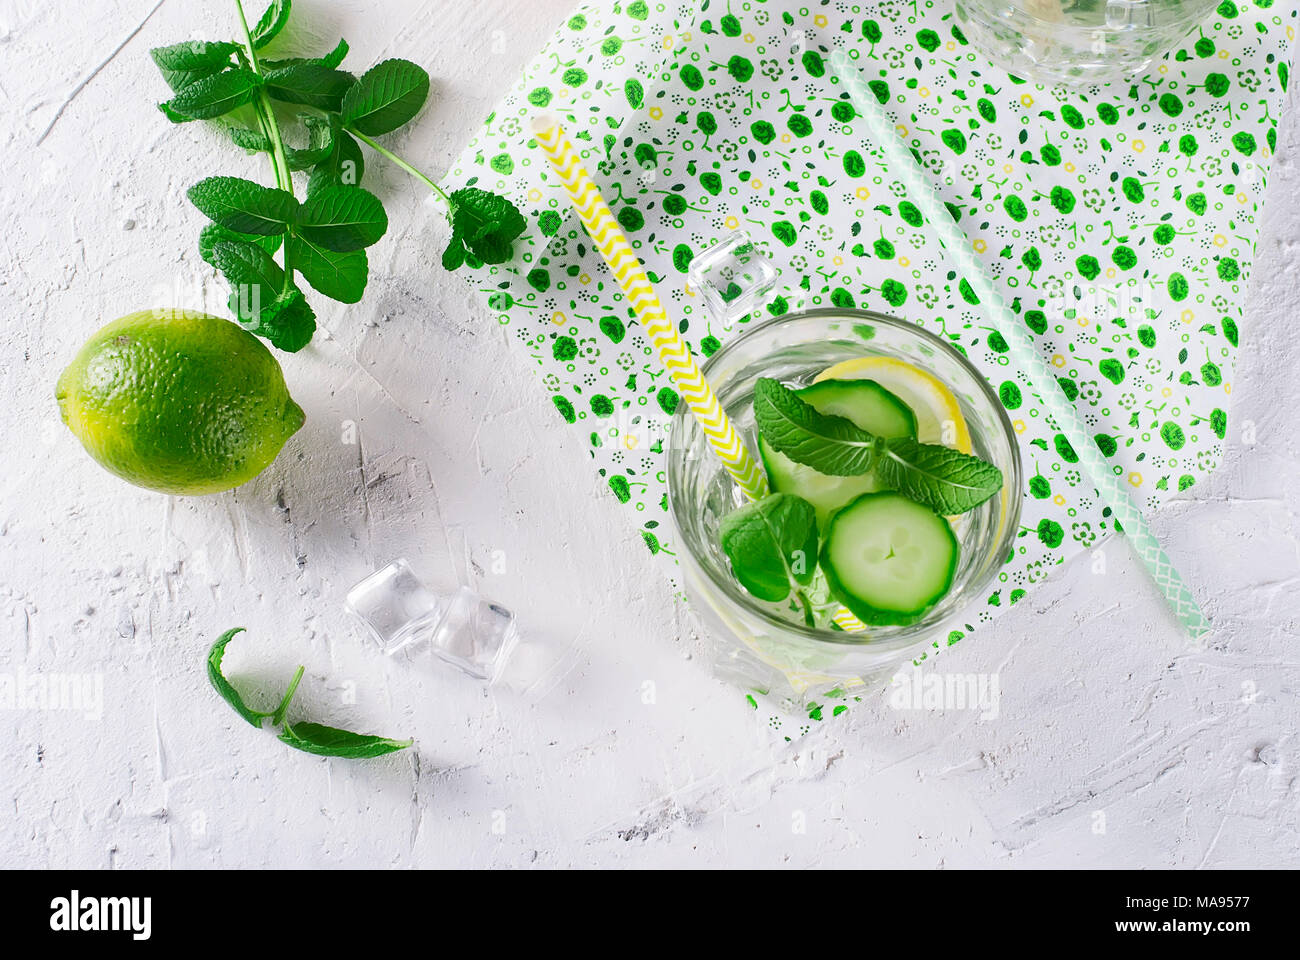 Refreshing cucumber cocktail, lemonade, detox water in a glasses on a white background. Summer drink. Top view - Stock Image